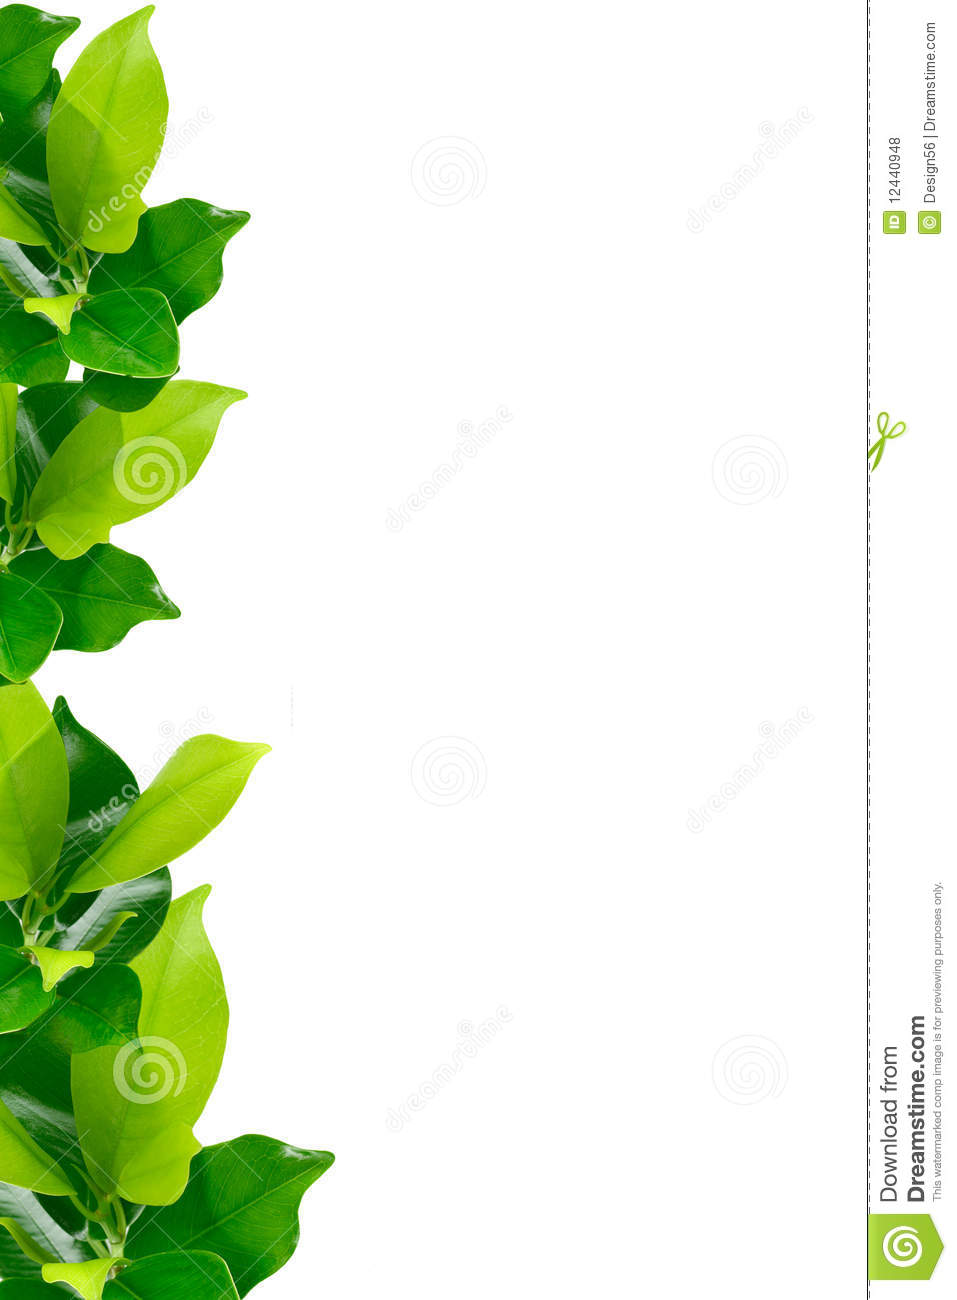 Green Young Plant Border Royalty Free Stock Photos Image 12440948